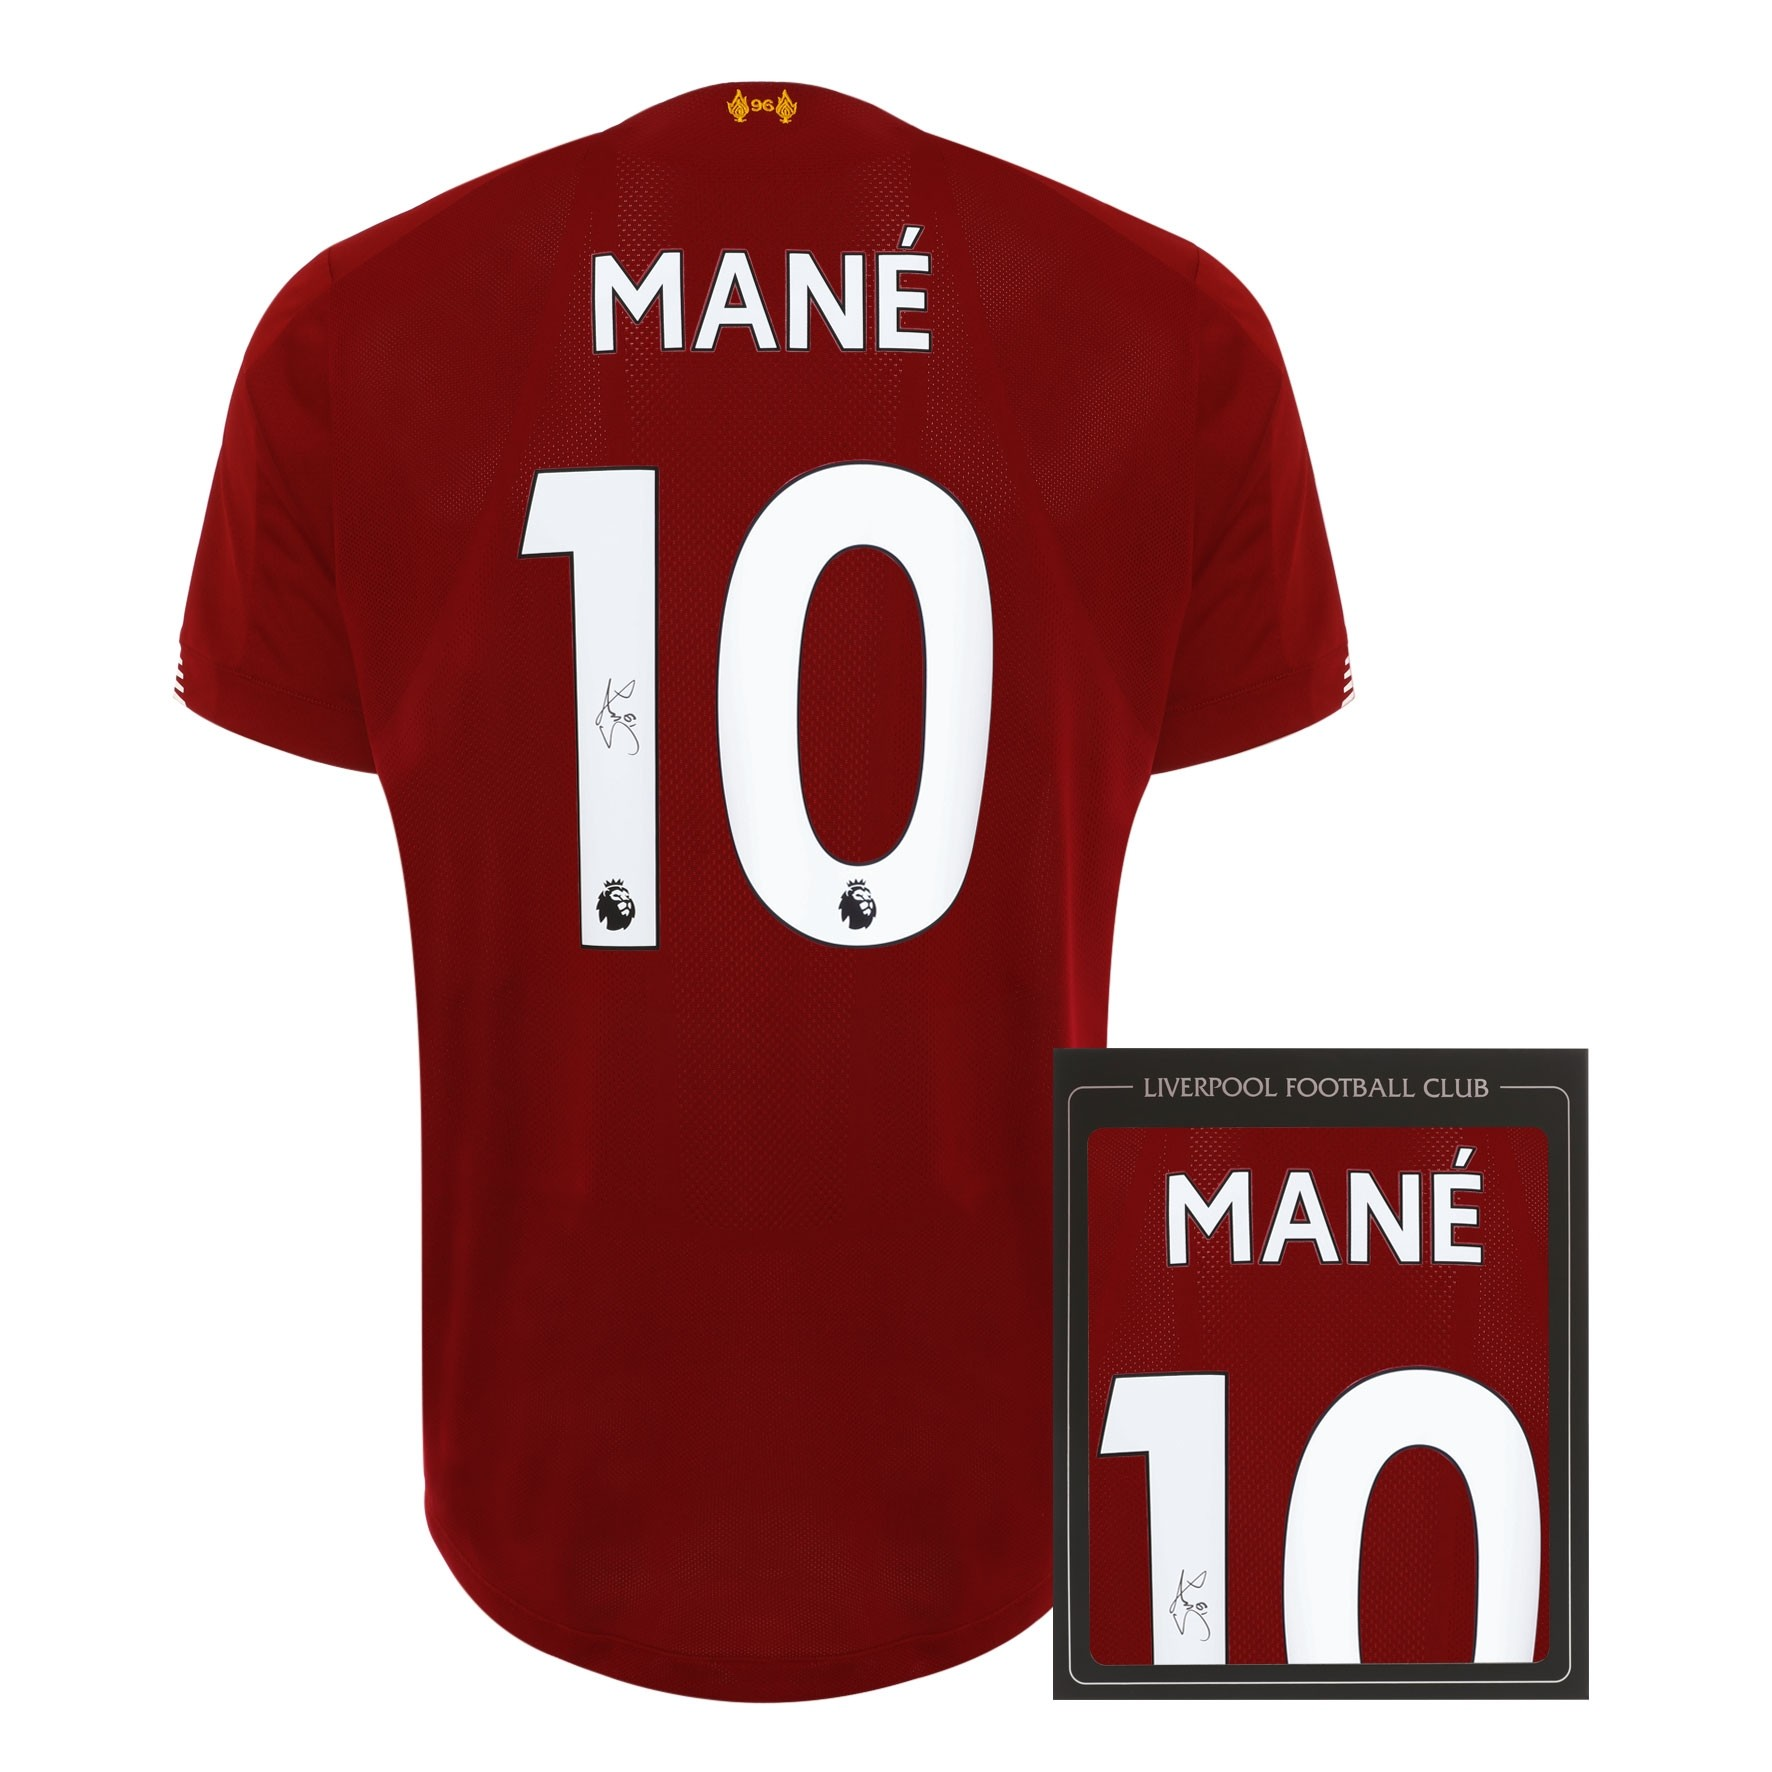 LFC 19/20 Mané Signed Shirt